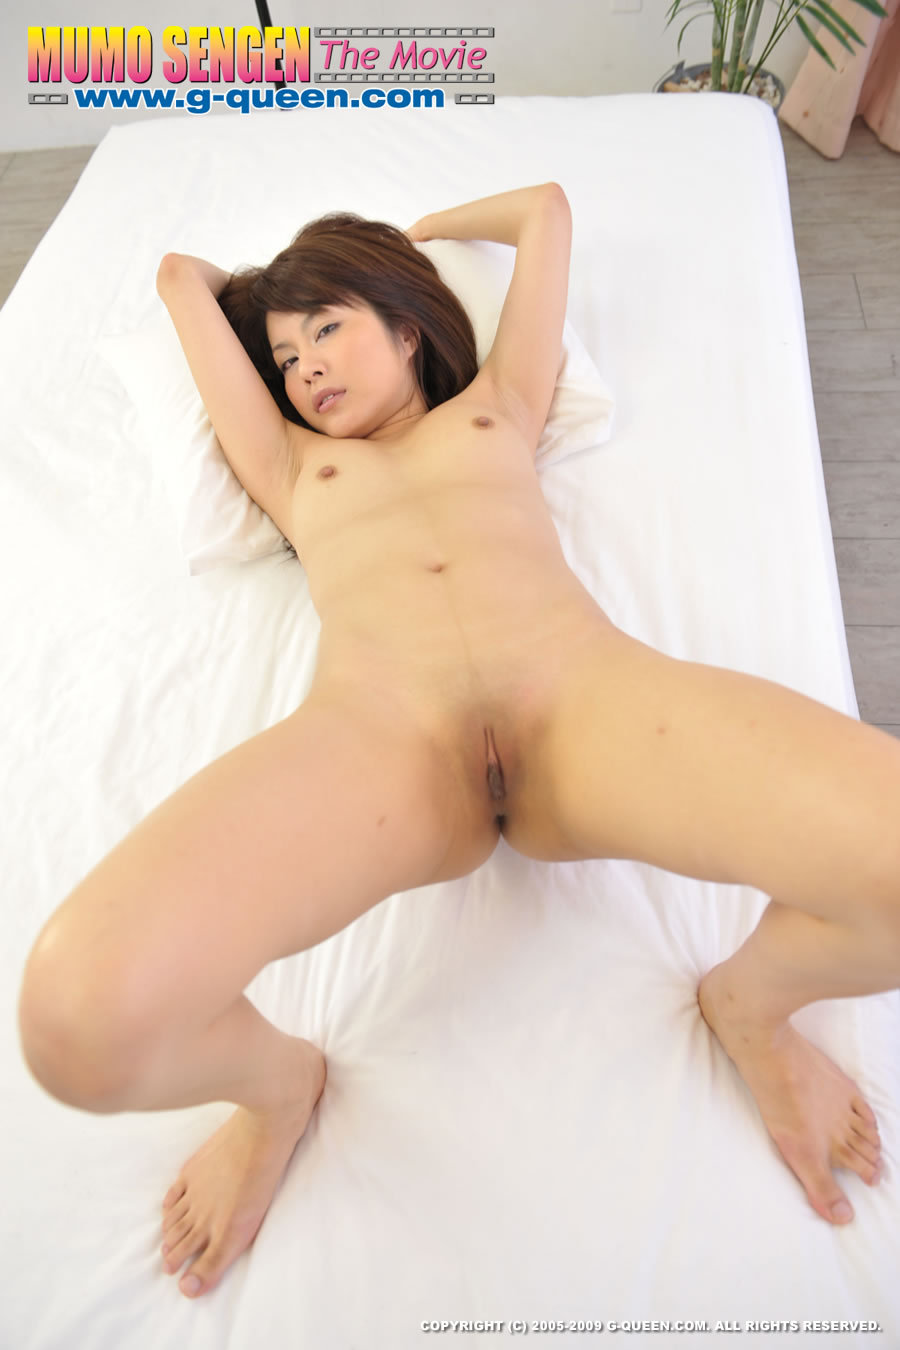 Aiko orgy fun 2 - 1 part 9